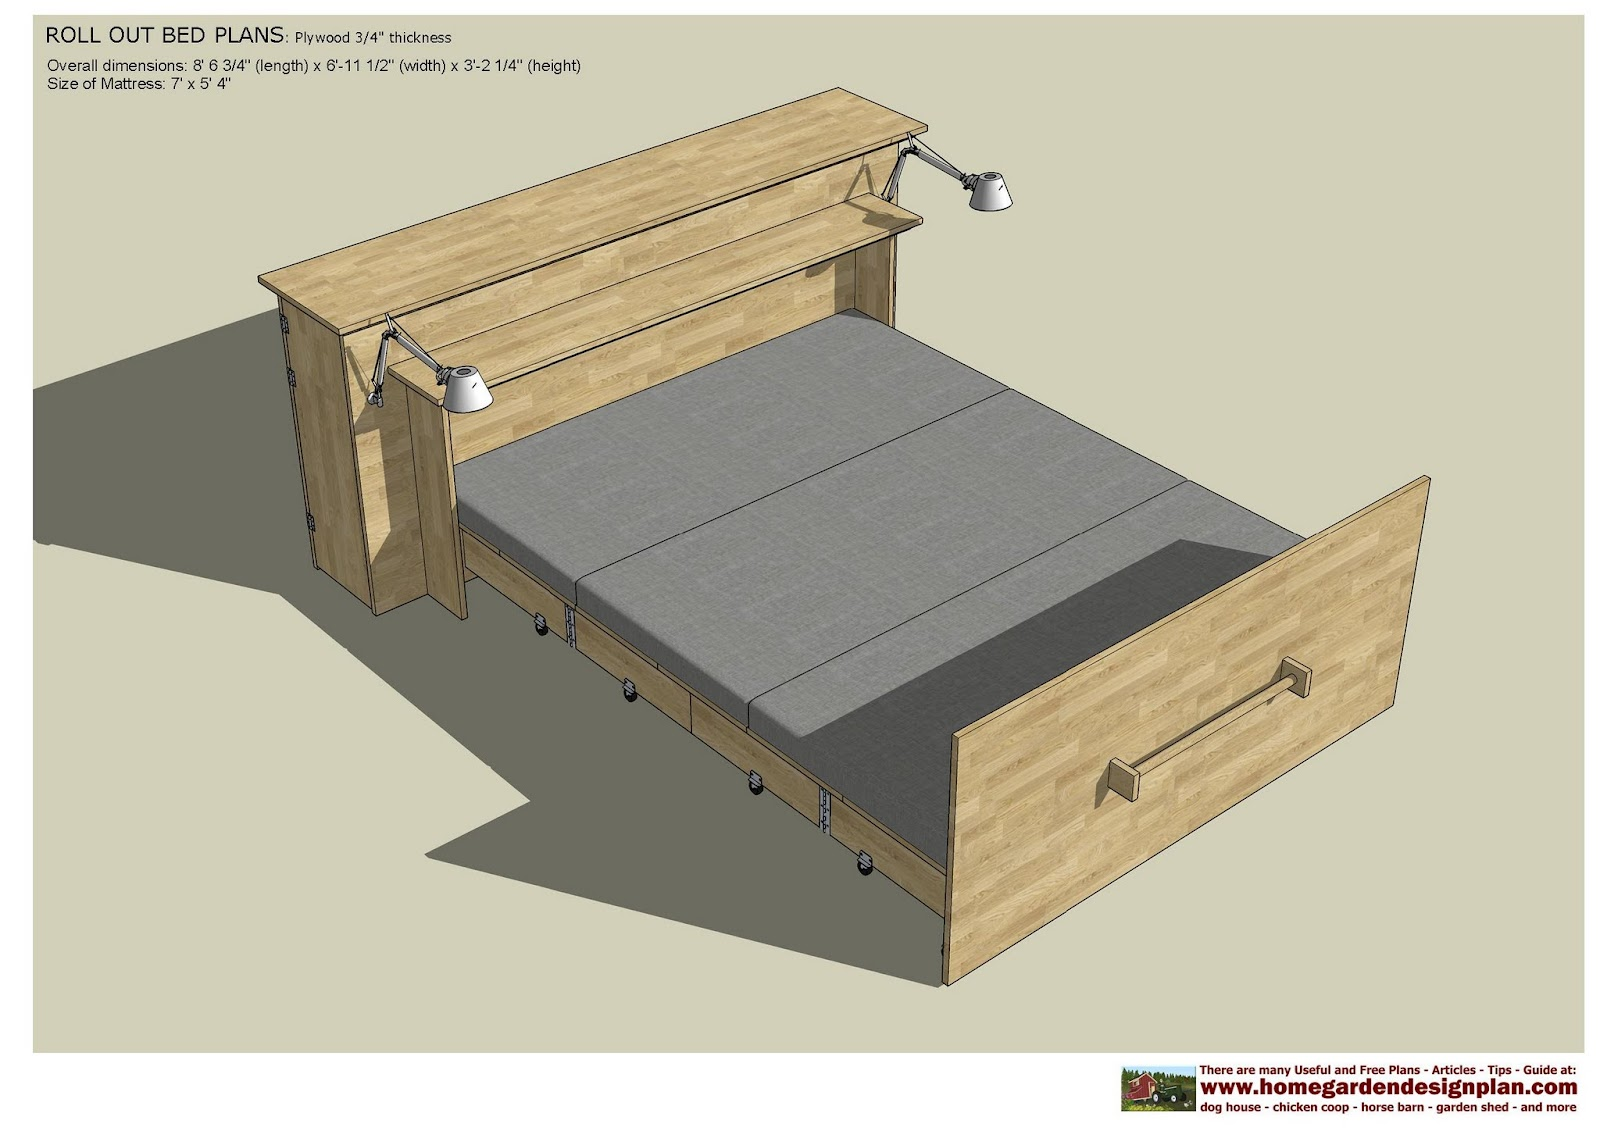 home garden plans: ROB100 - Roll Out Bed Plans Construction - Smart ...